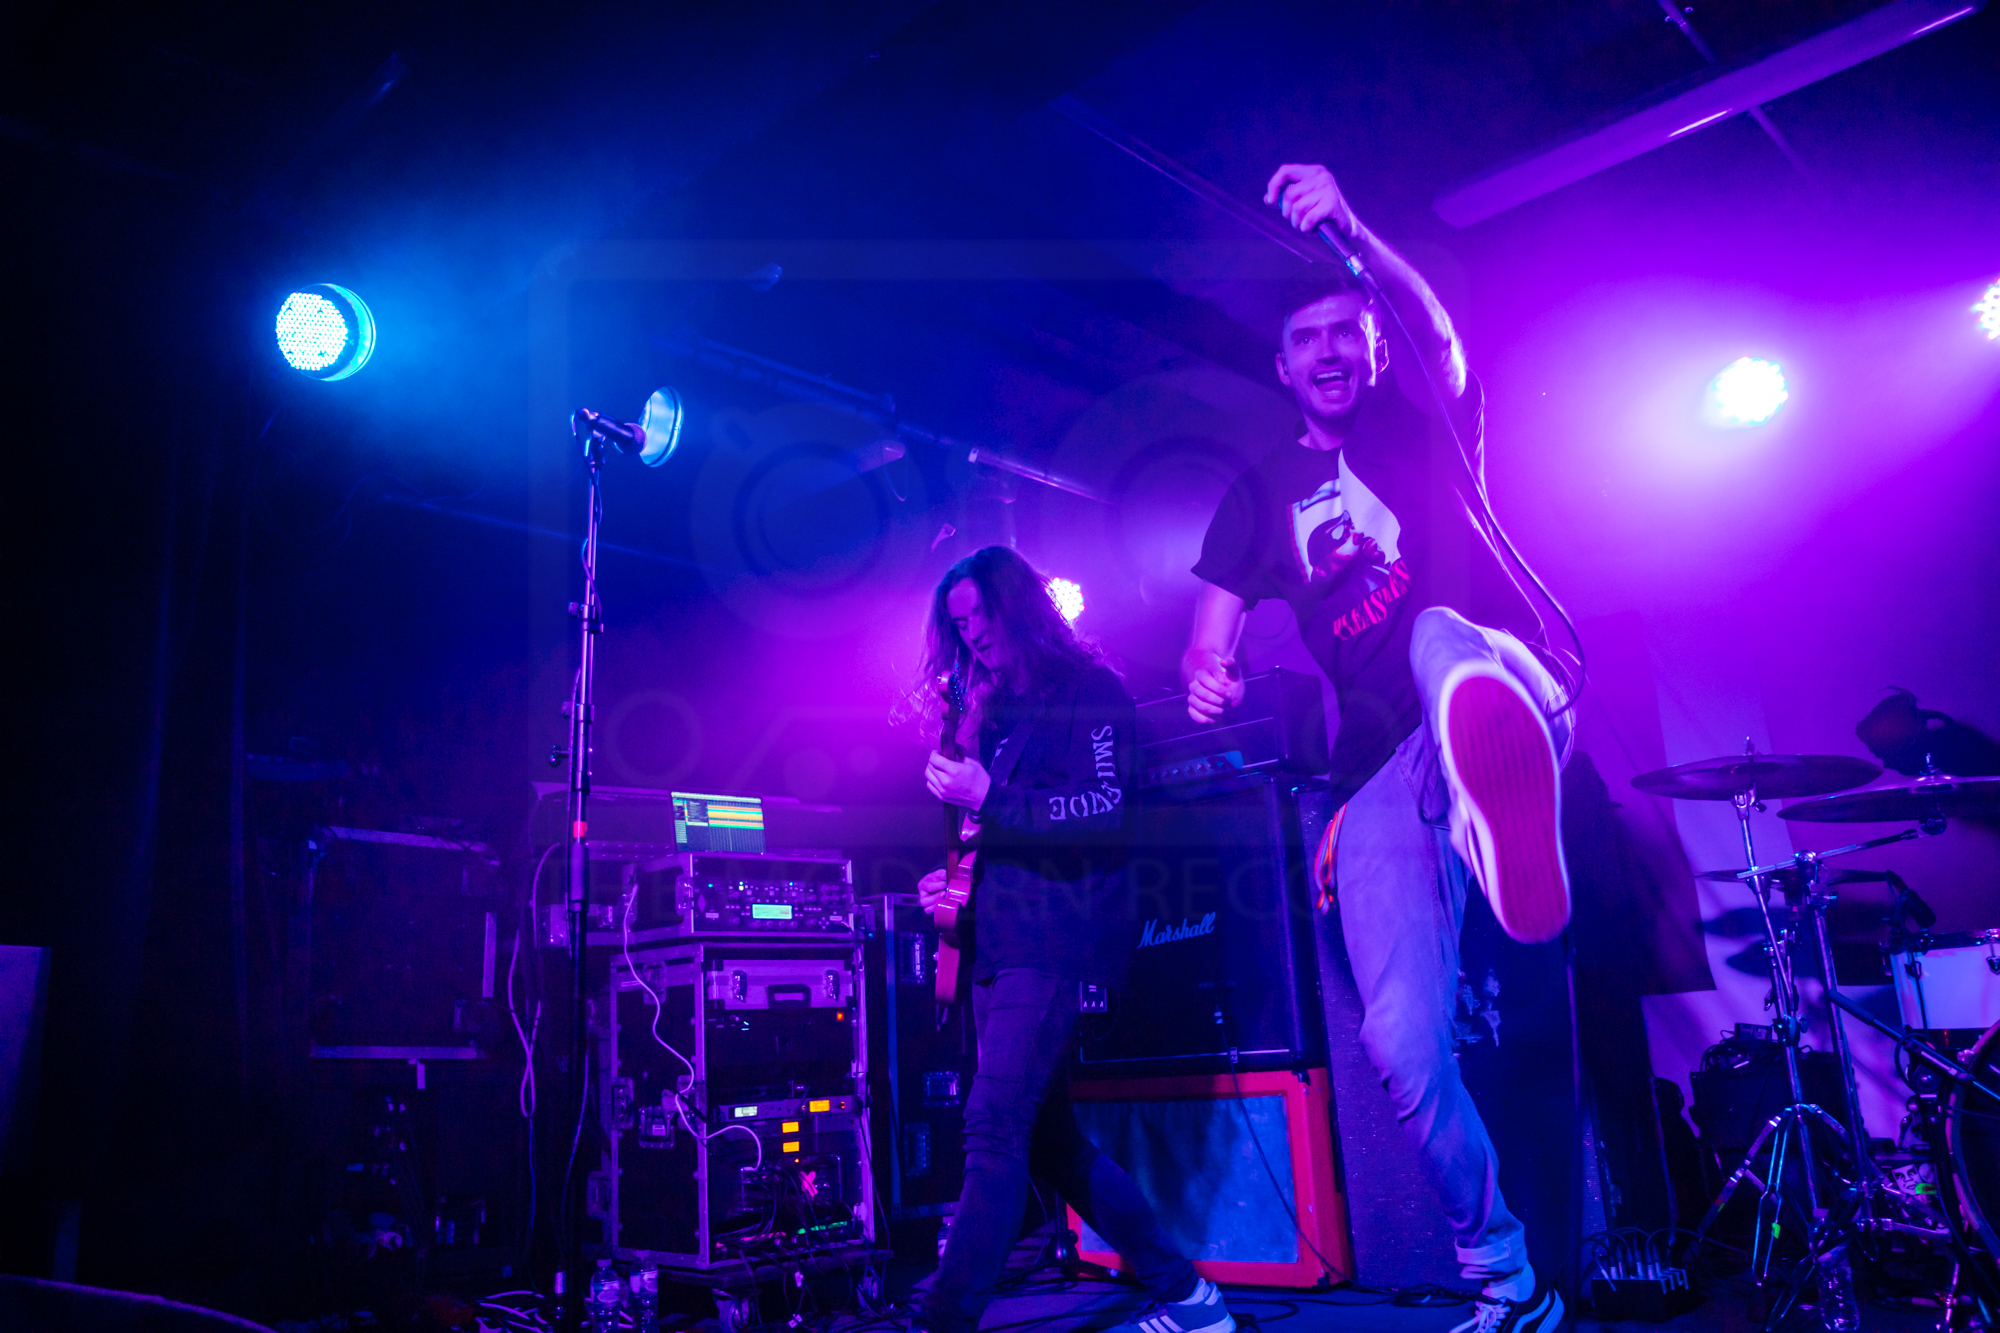 7-Woes-ManchesterAcademy3-26-9-19.jpg